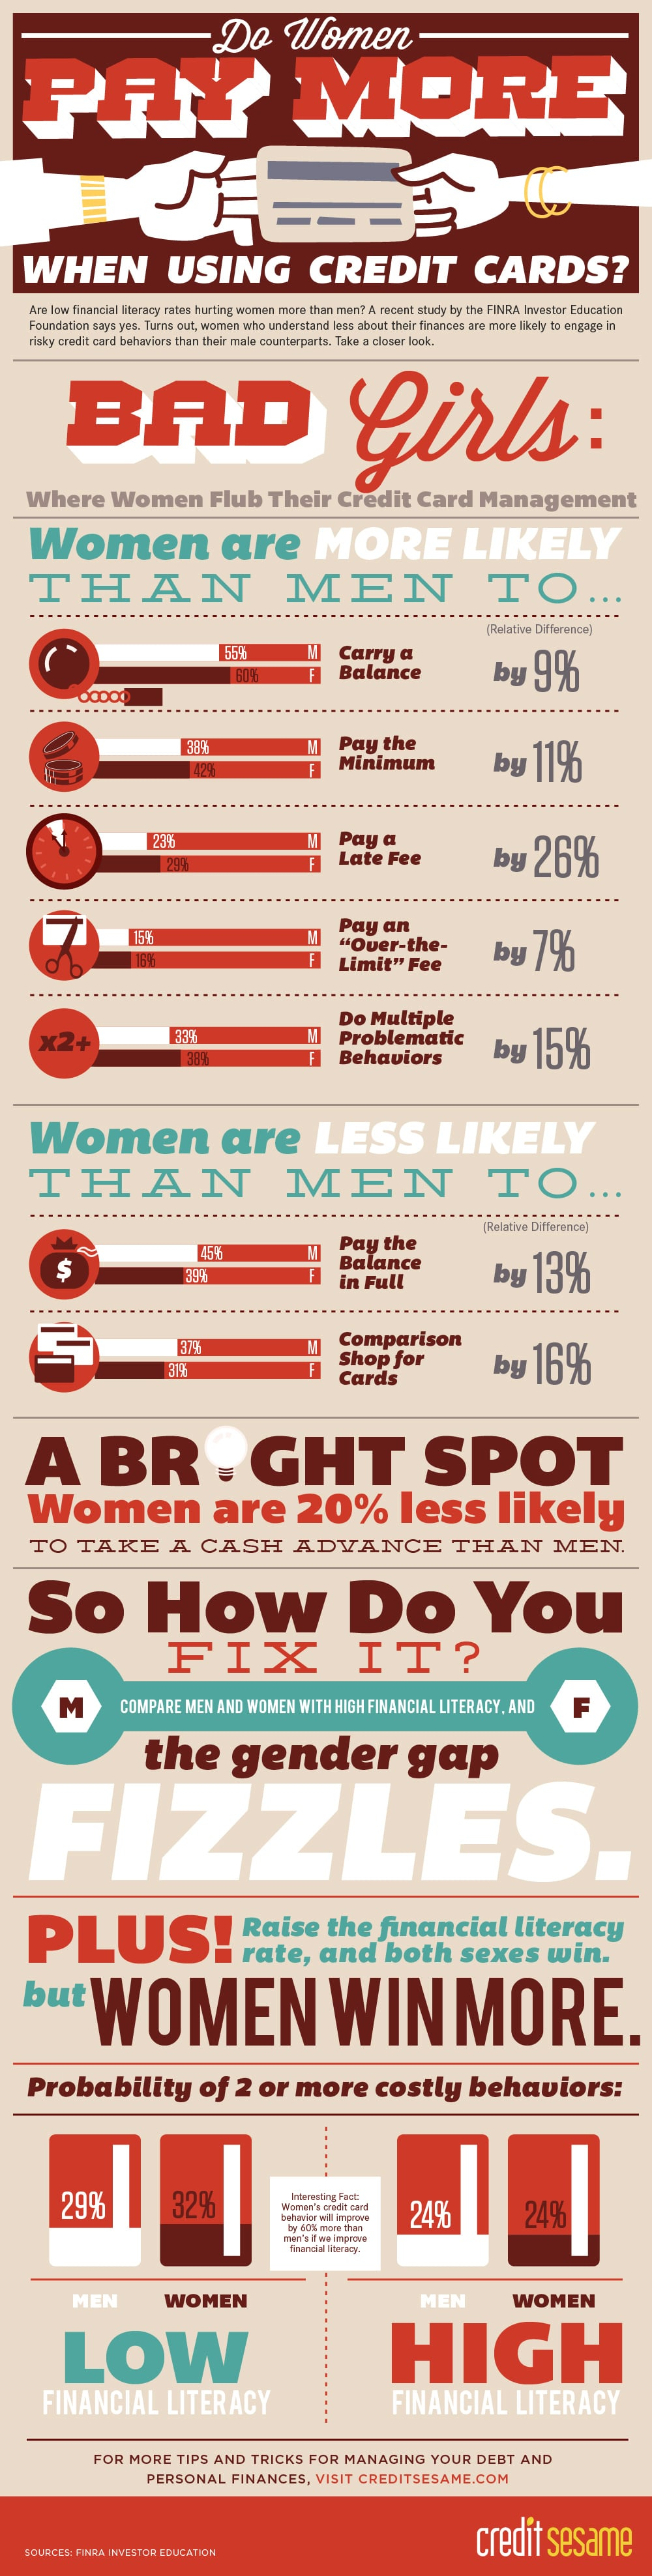 Gender Pricing: Women Often Pay More Than Men [Infographic]